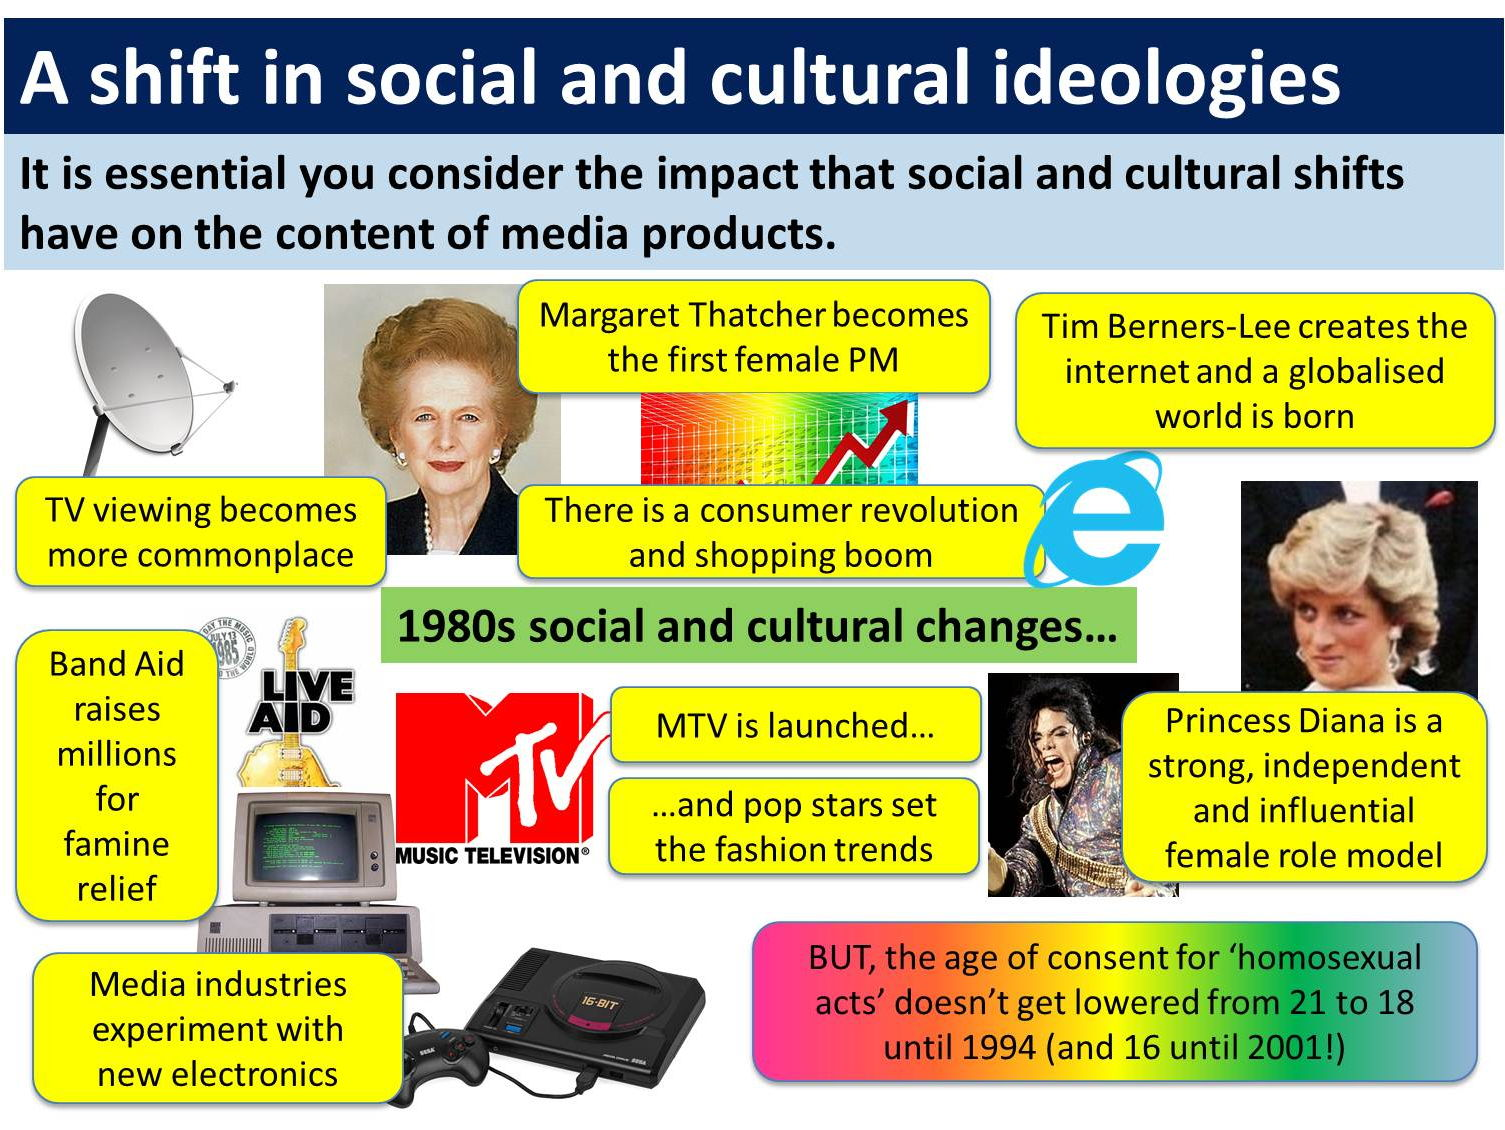 9-1 GCSE Media Studies Contexts (5 week SoW)